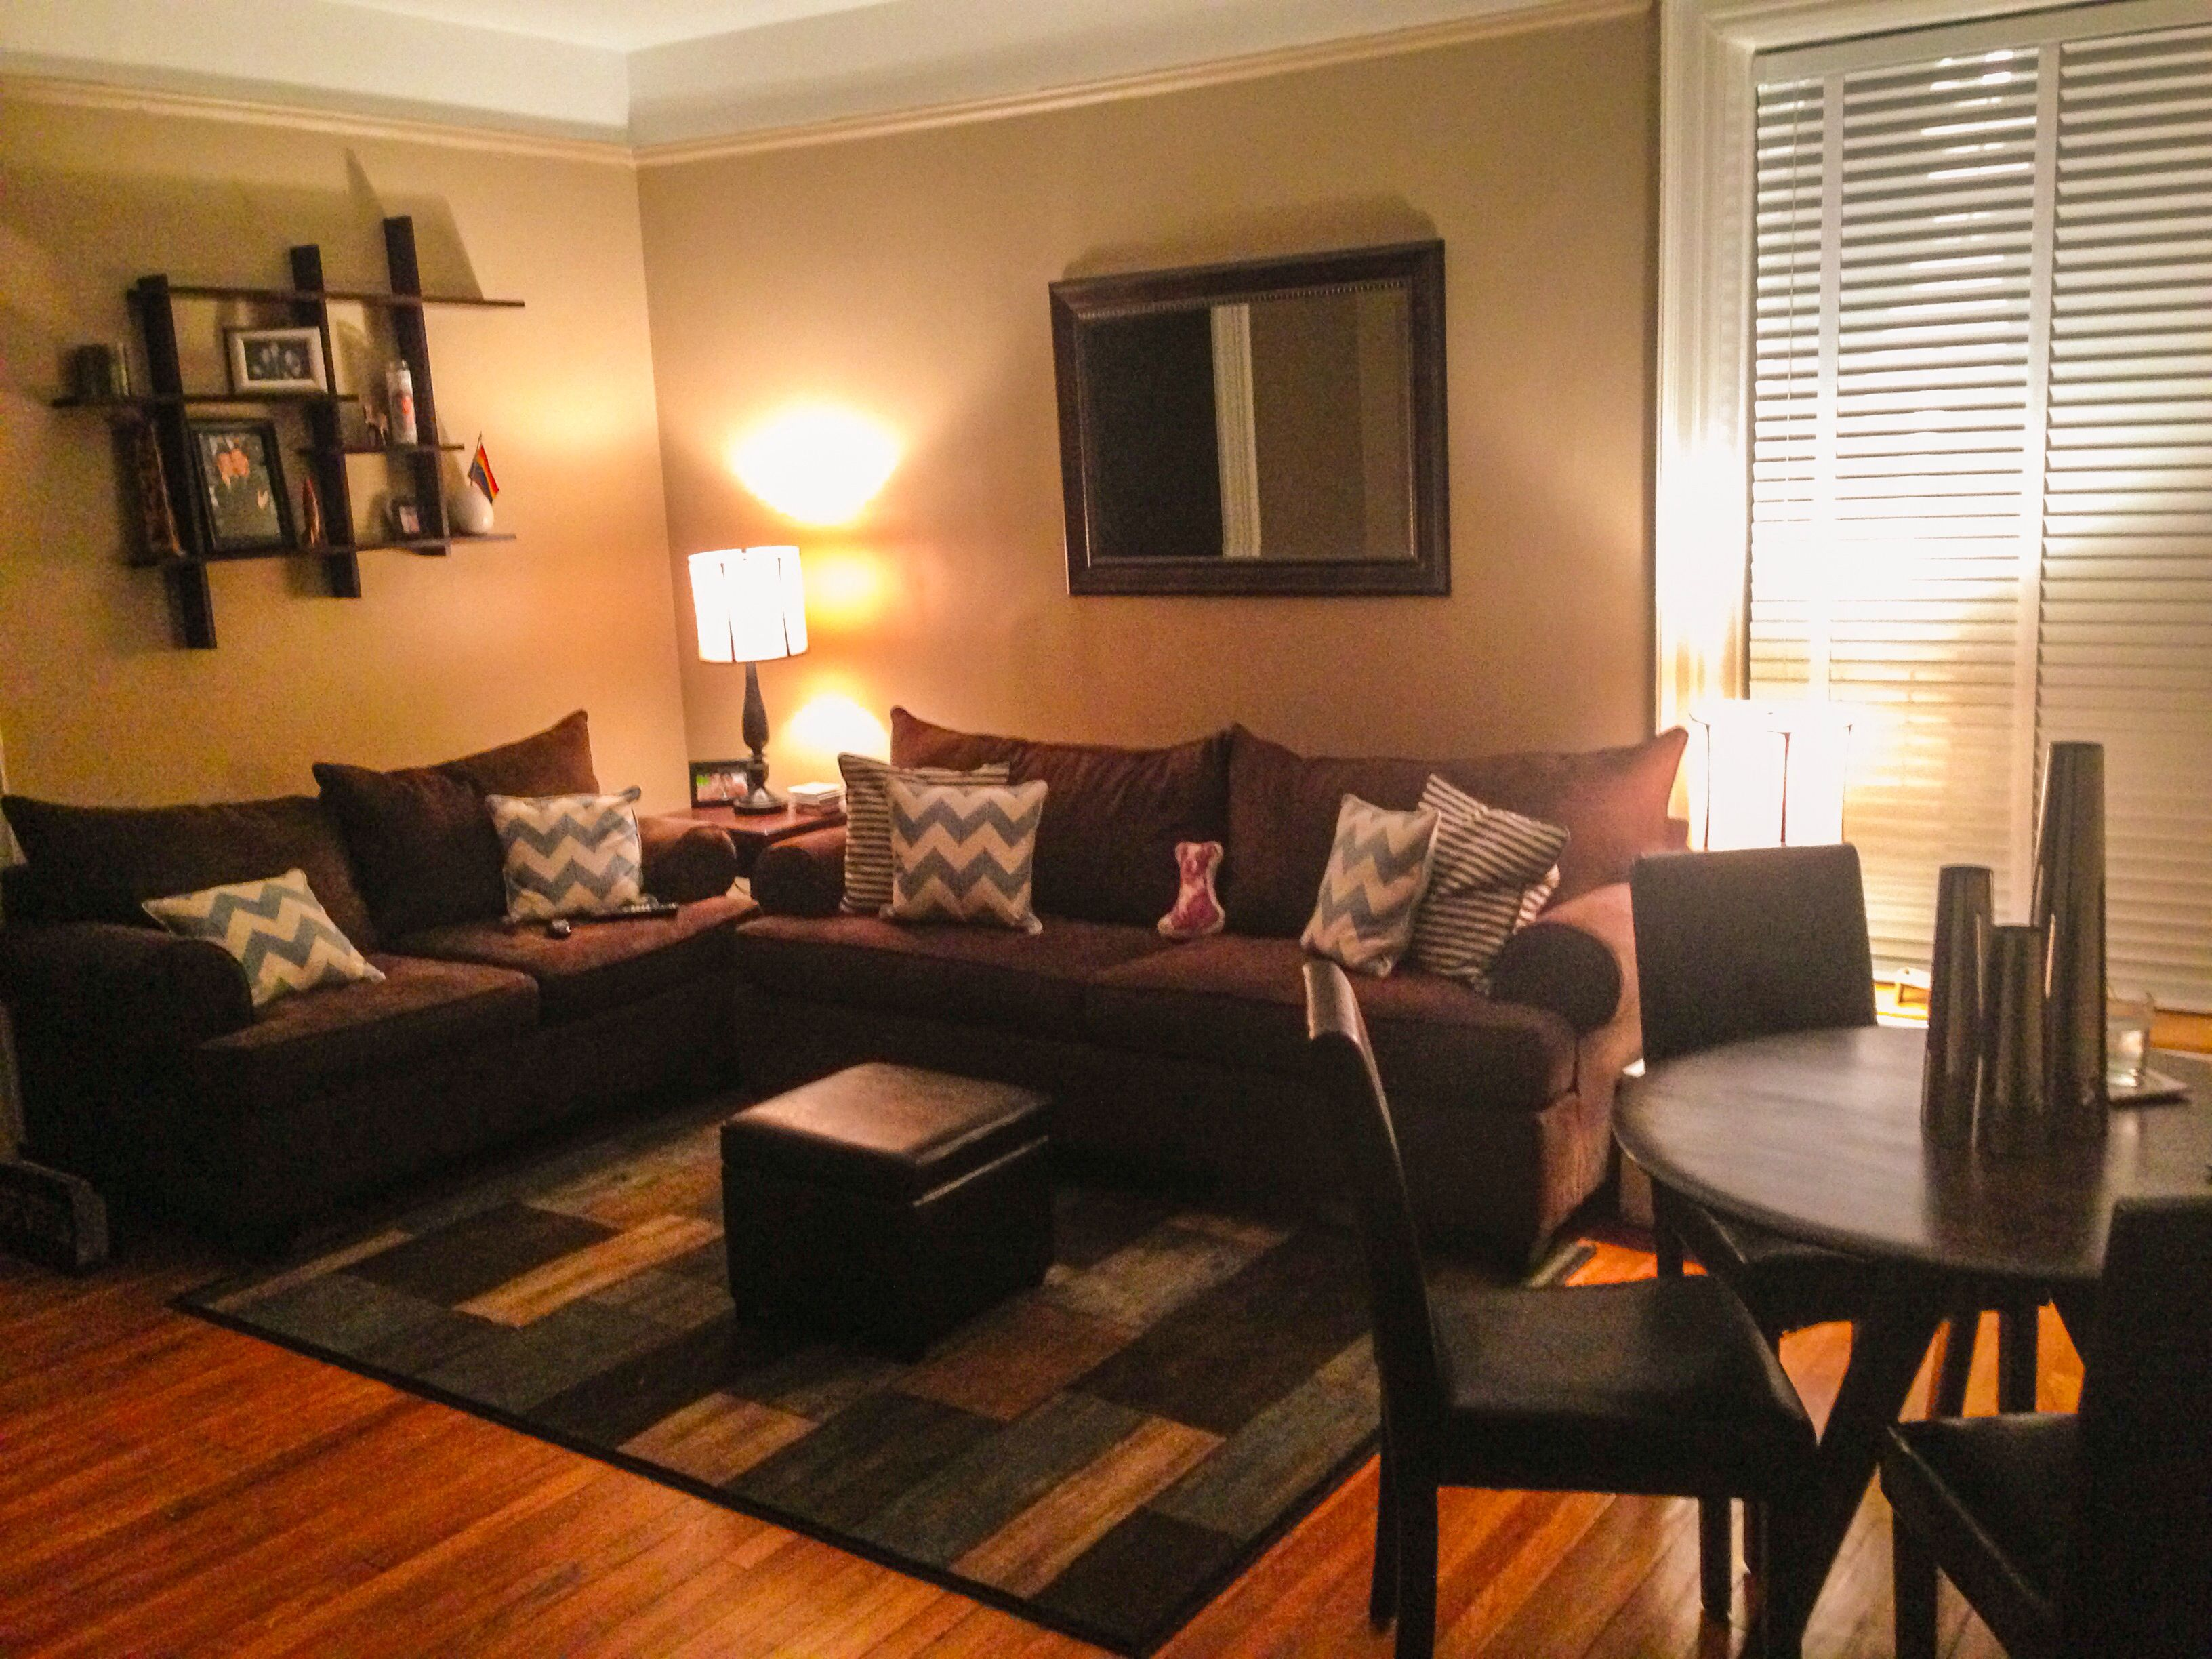 New Living Room Warm Colors With Splashes Of Chevron